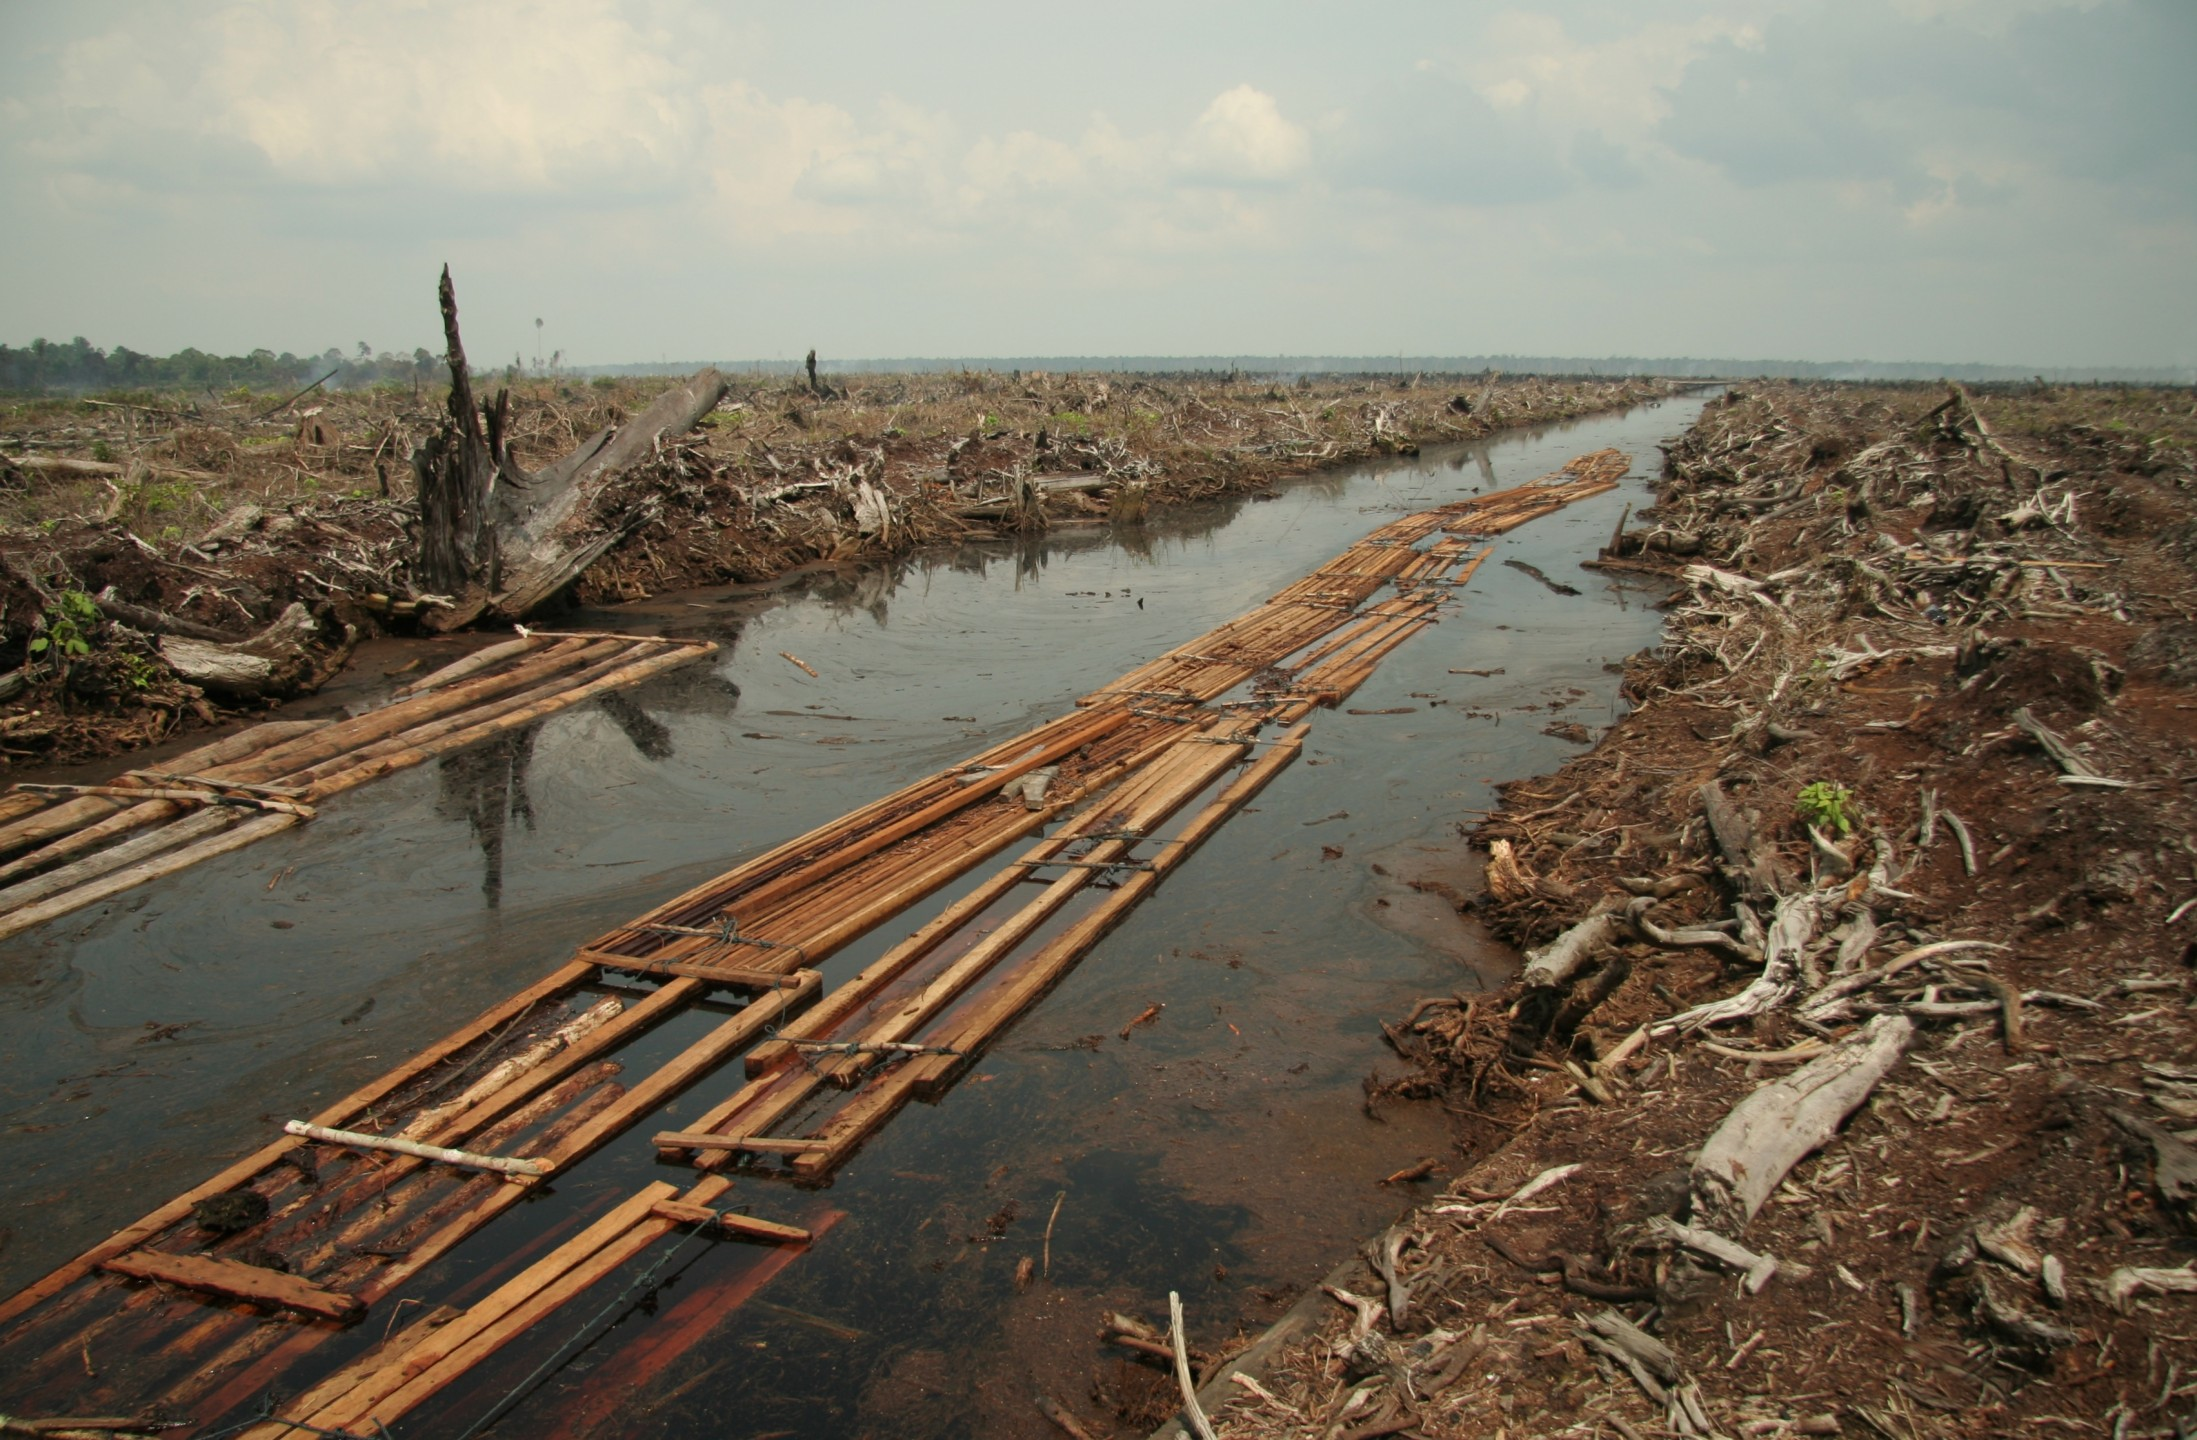 riau_deforestation_2006.jpg